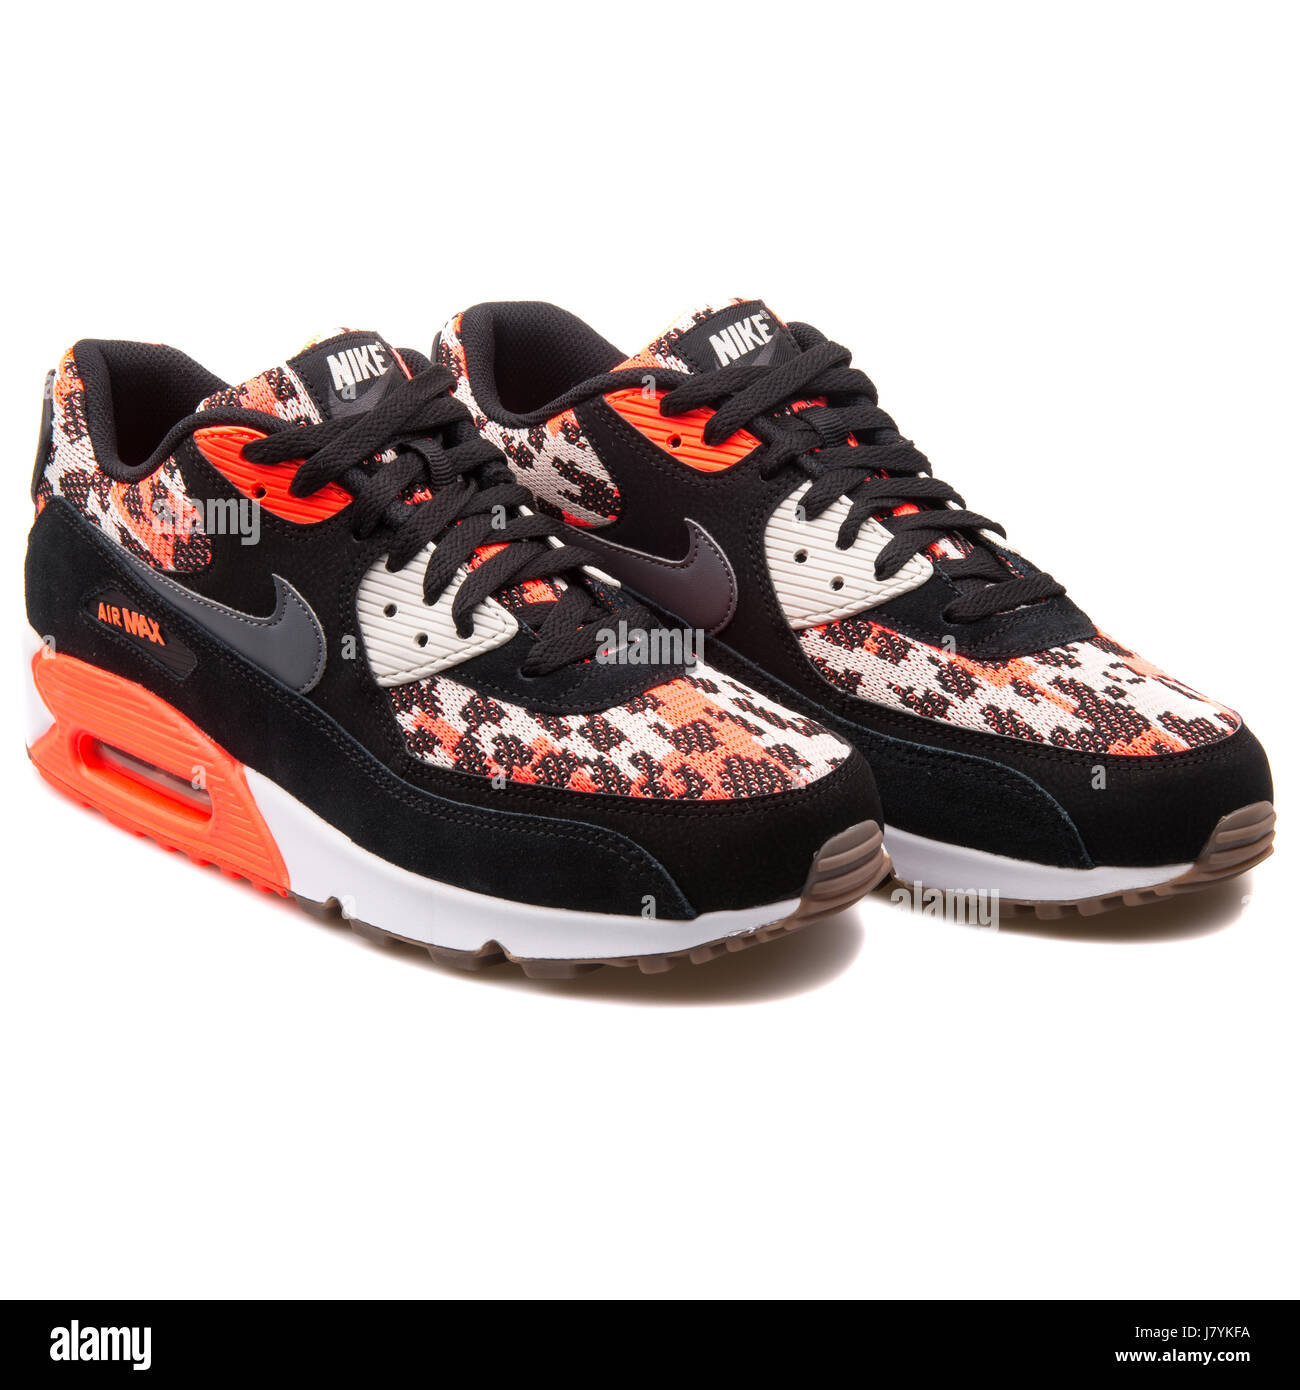 Nike Air Max 90 PA Hot Lava Pattern Black Sneakers 749674